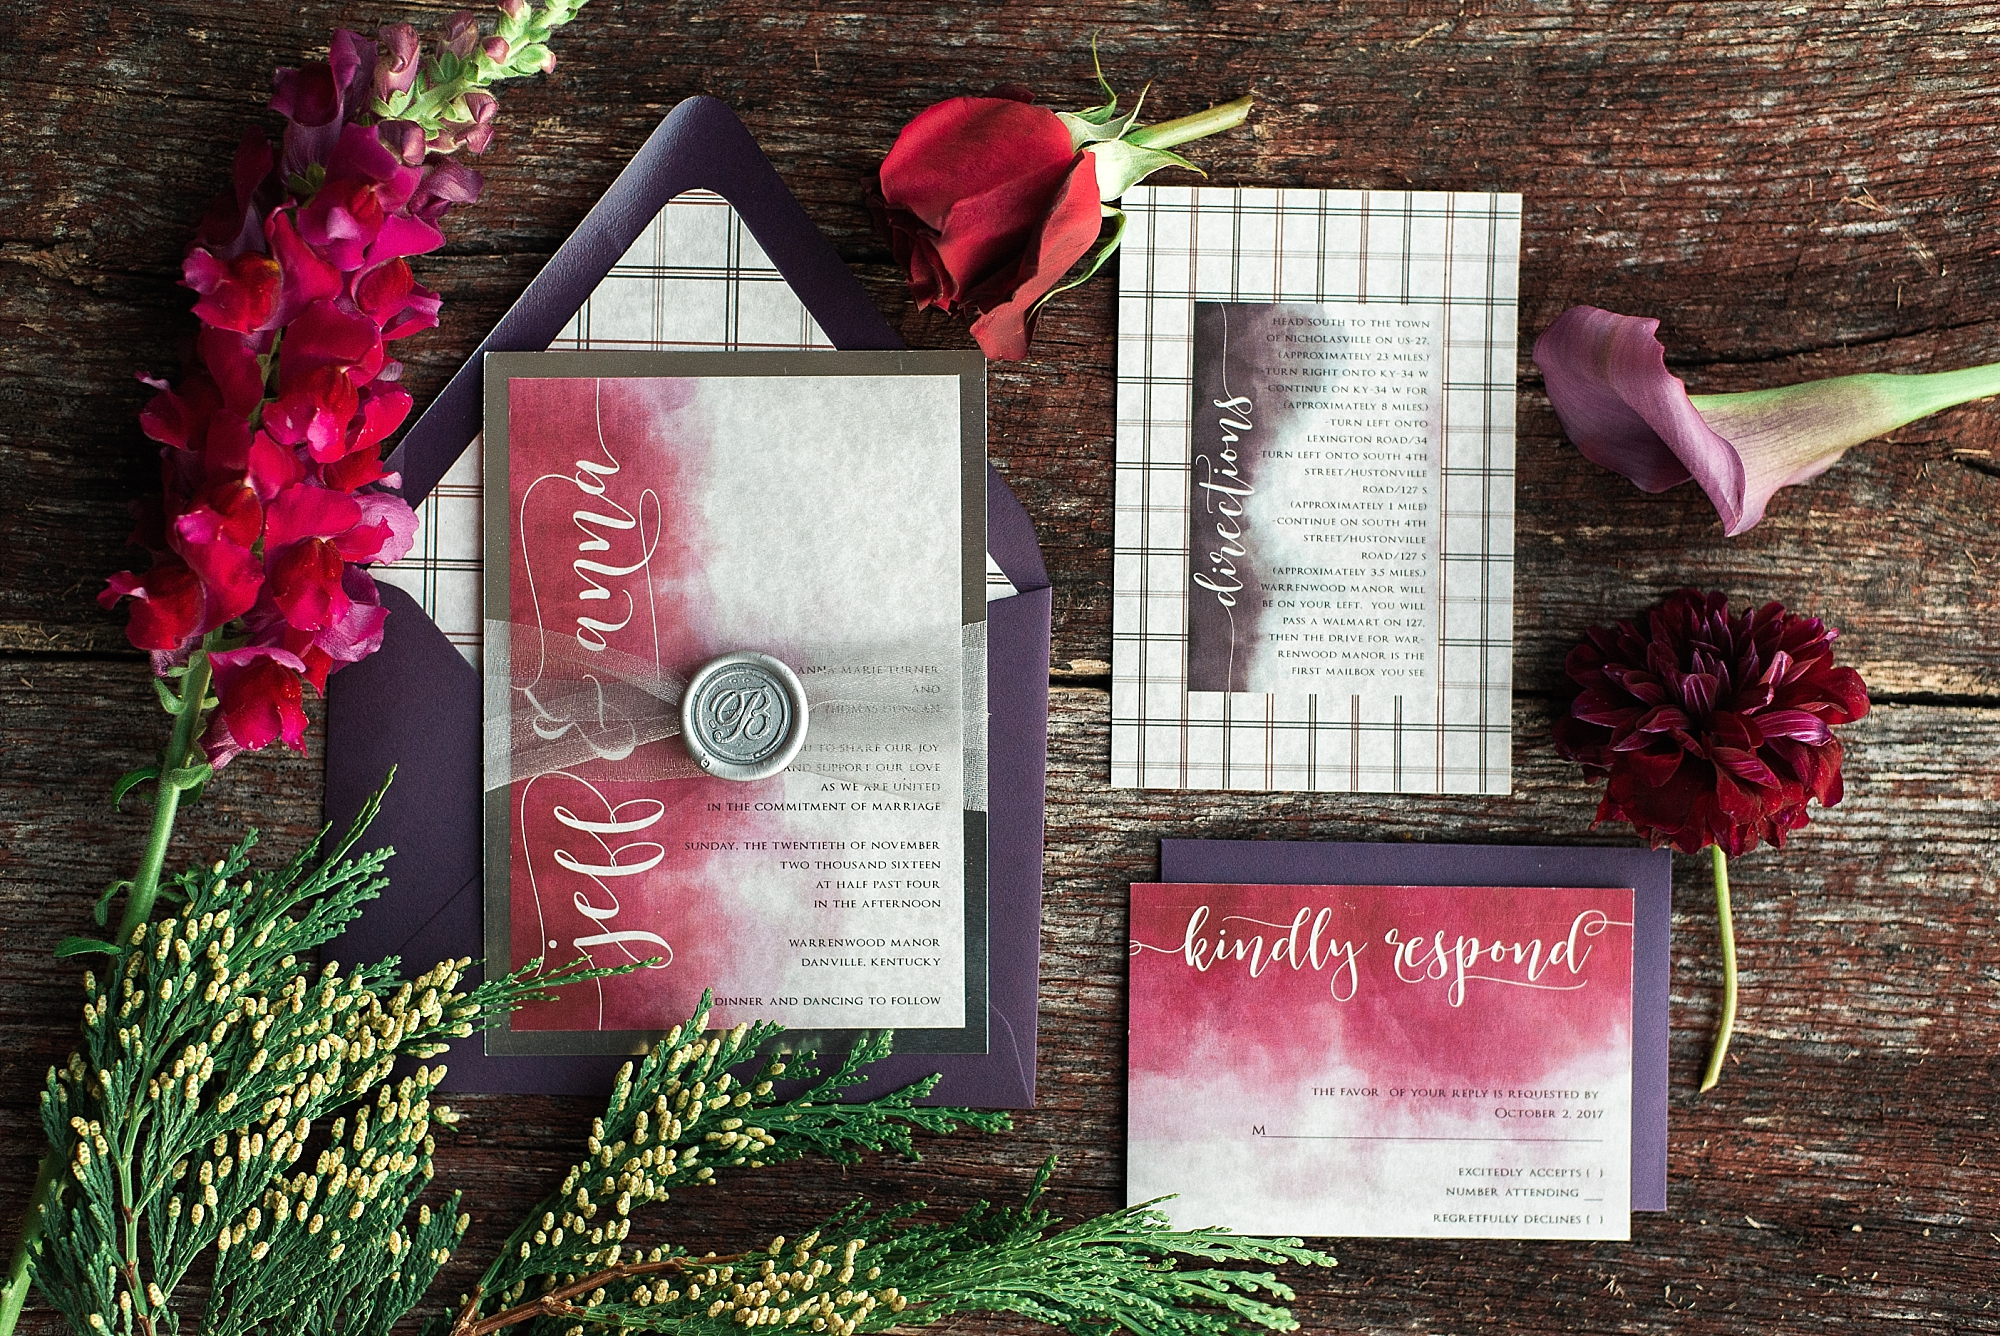 Becca at Simply Done Invites did a wonderful job putting the invitation suite together!